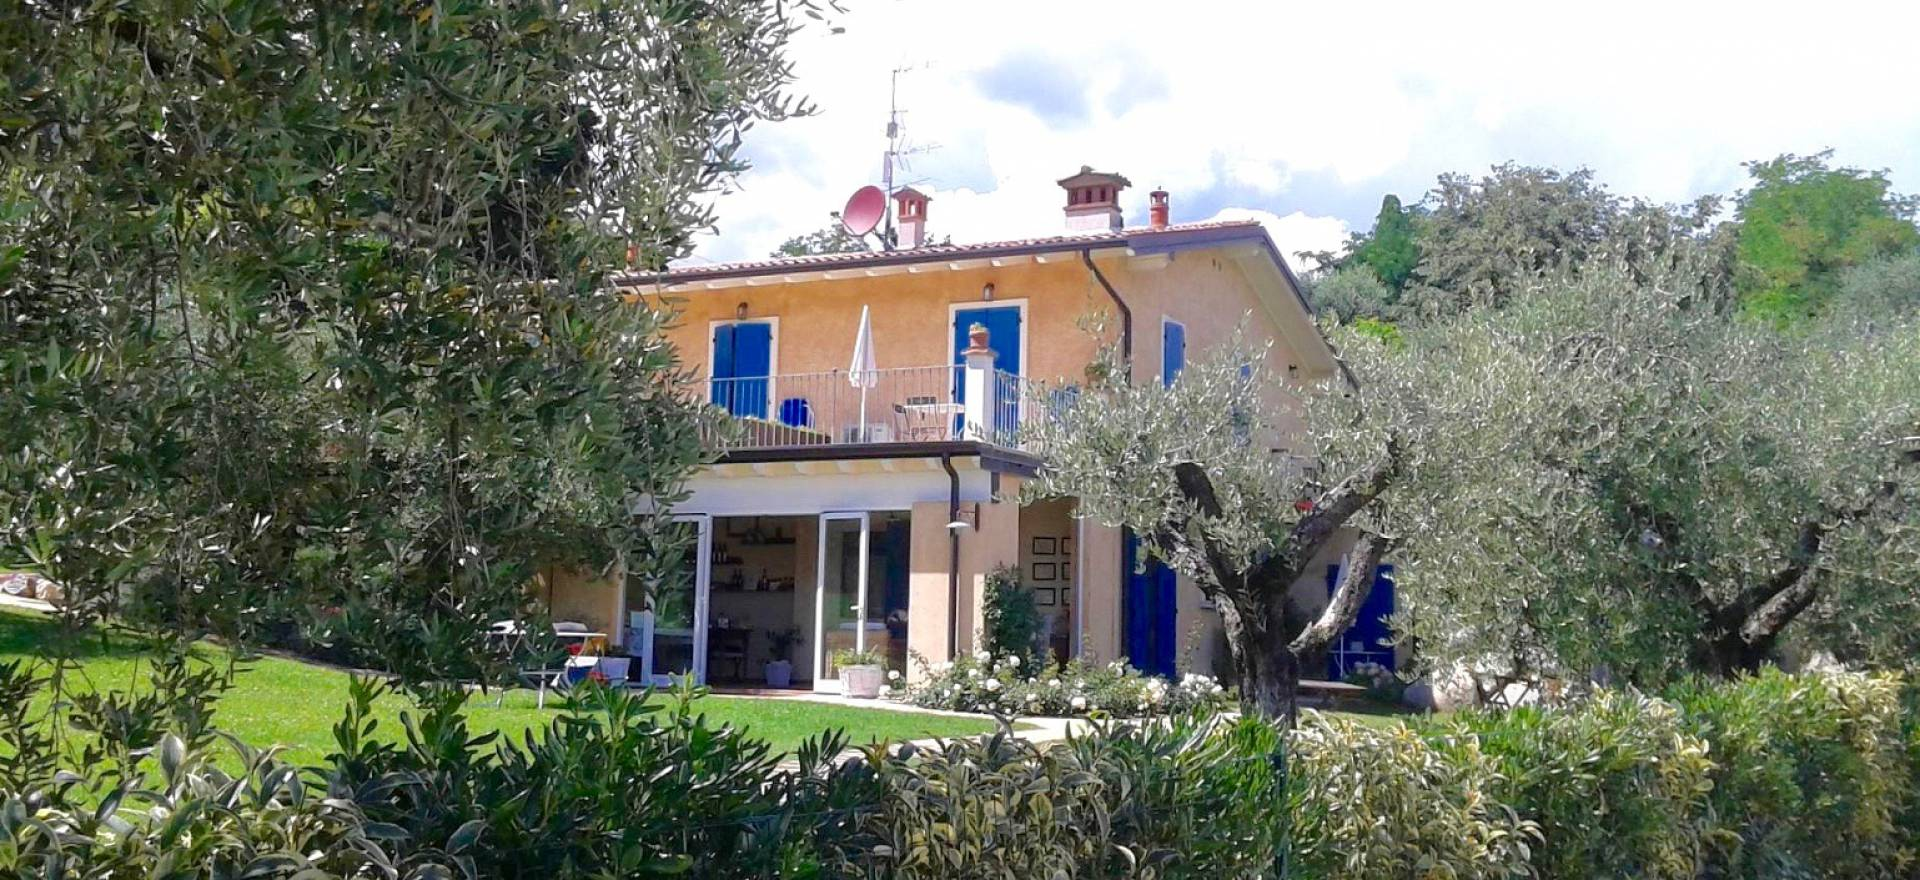 Agriturismo Lake Como and Lake Garda Small cozy agriturismo in an olive grove near Lake Garda